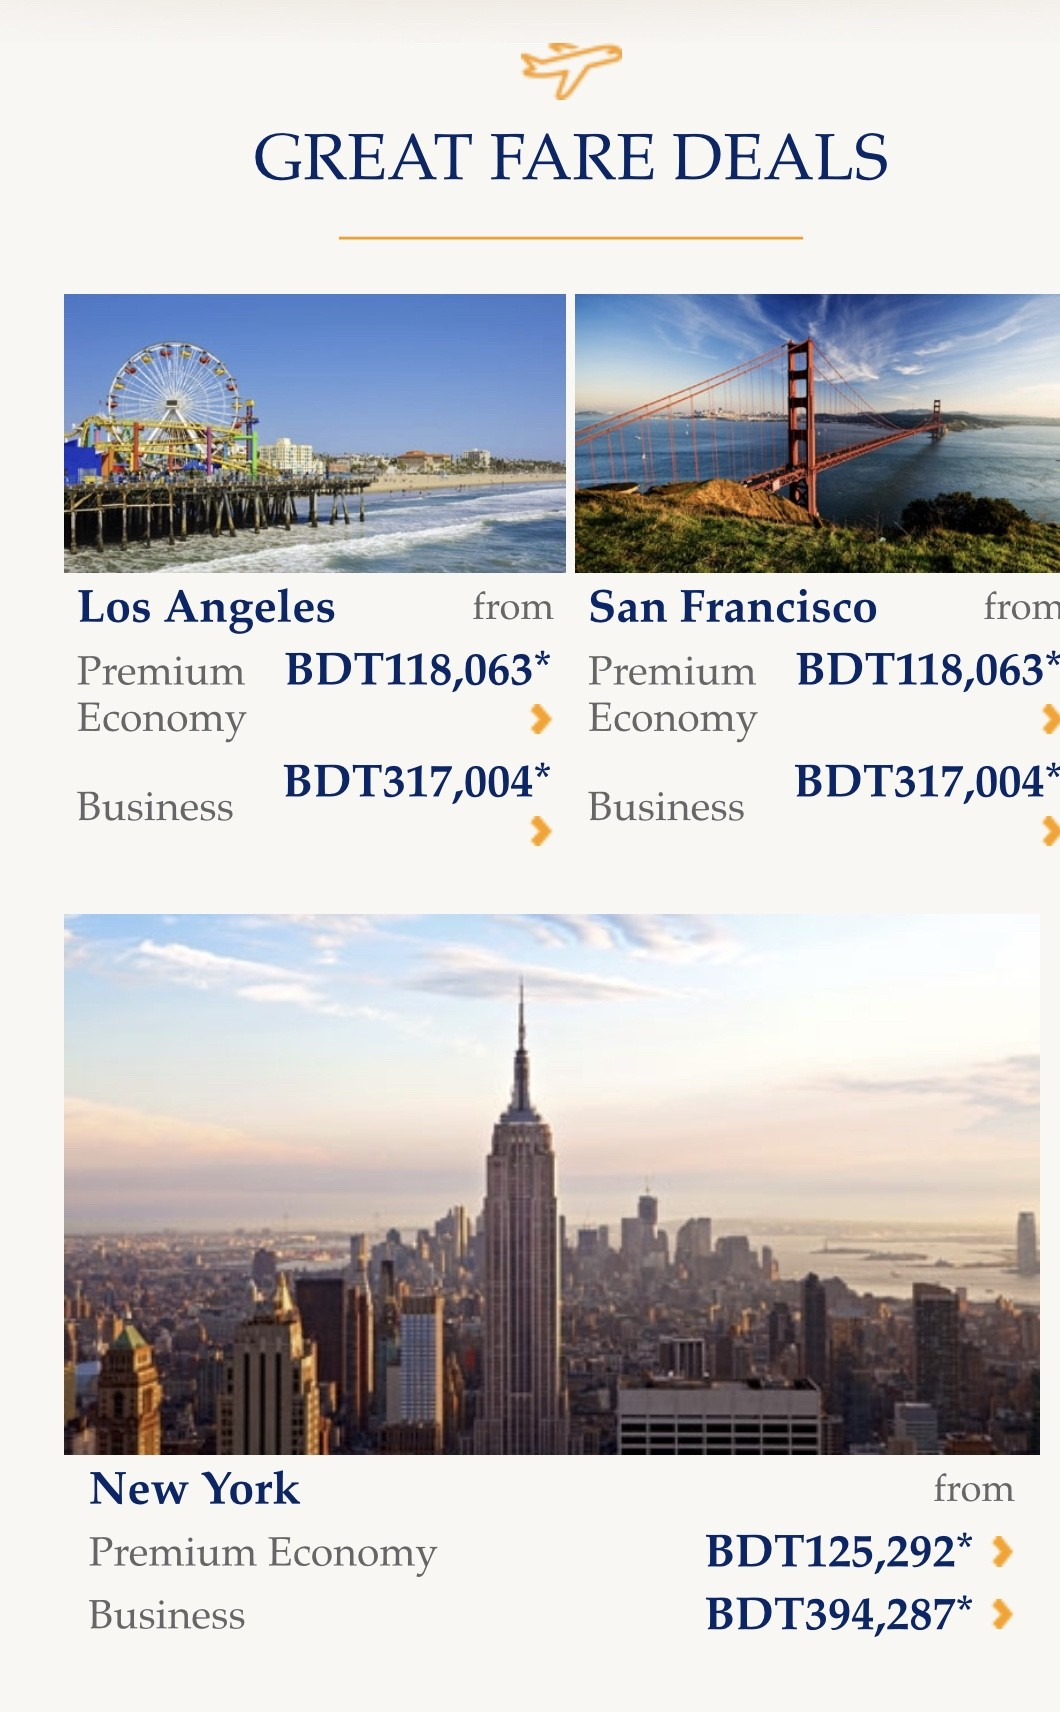 Non-stop flights between Singapore and USA